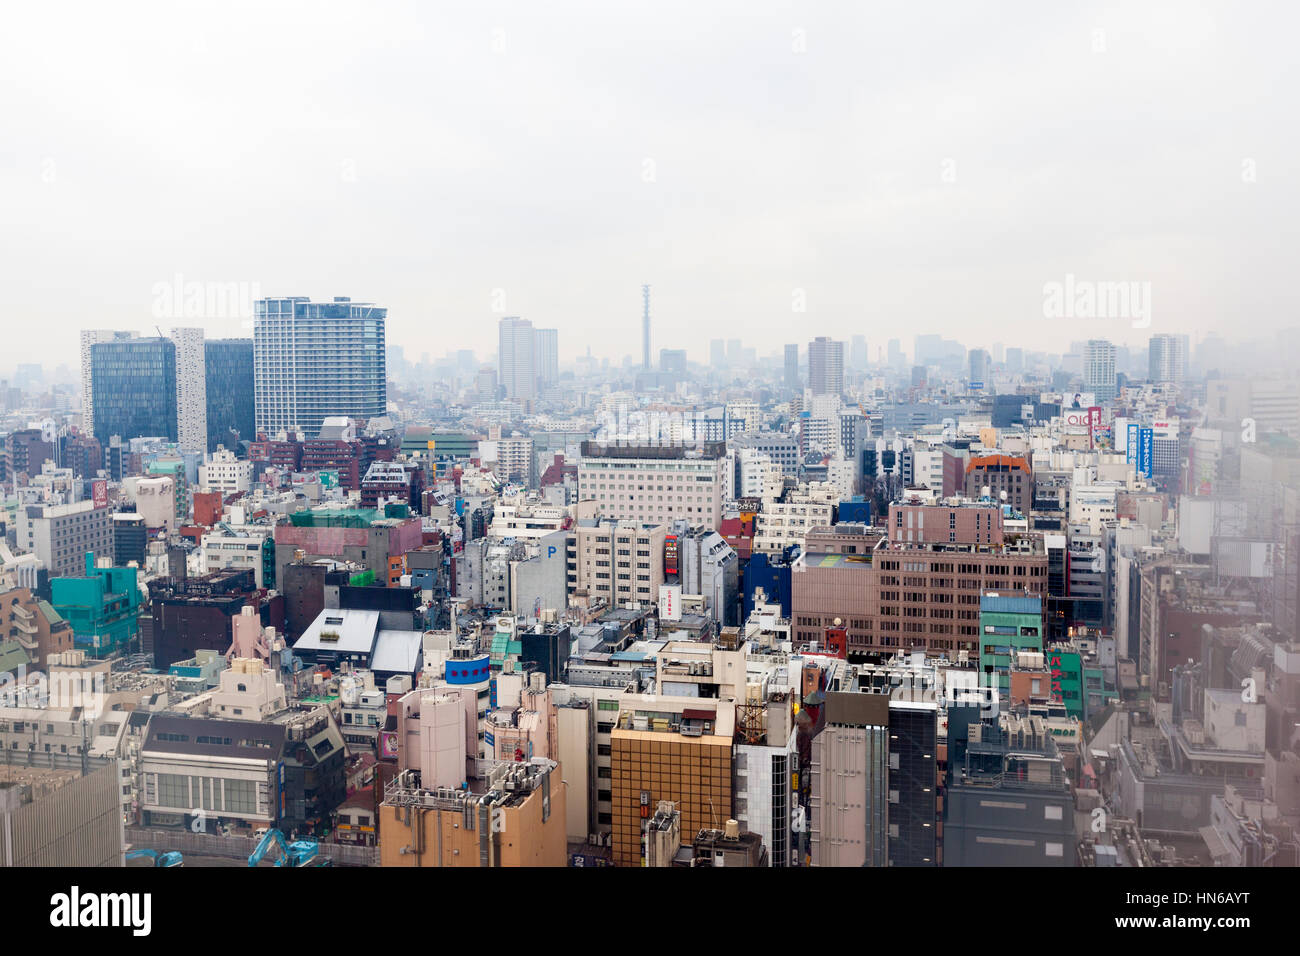 Tokyo, Japan - March 2, 2012: Elevated view of the Tokyo skyline taken through the window of a Shinjuku hotel room Stock Photo